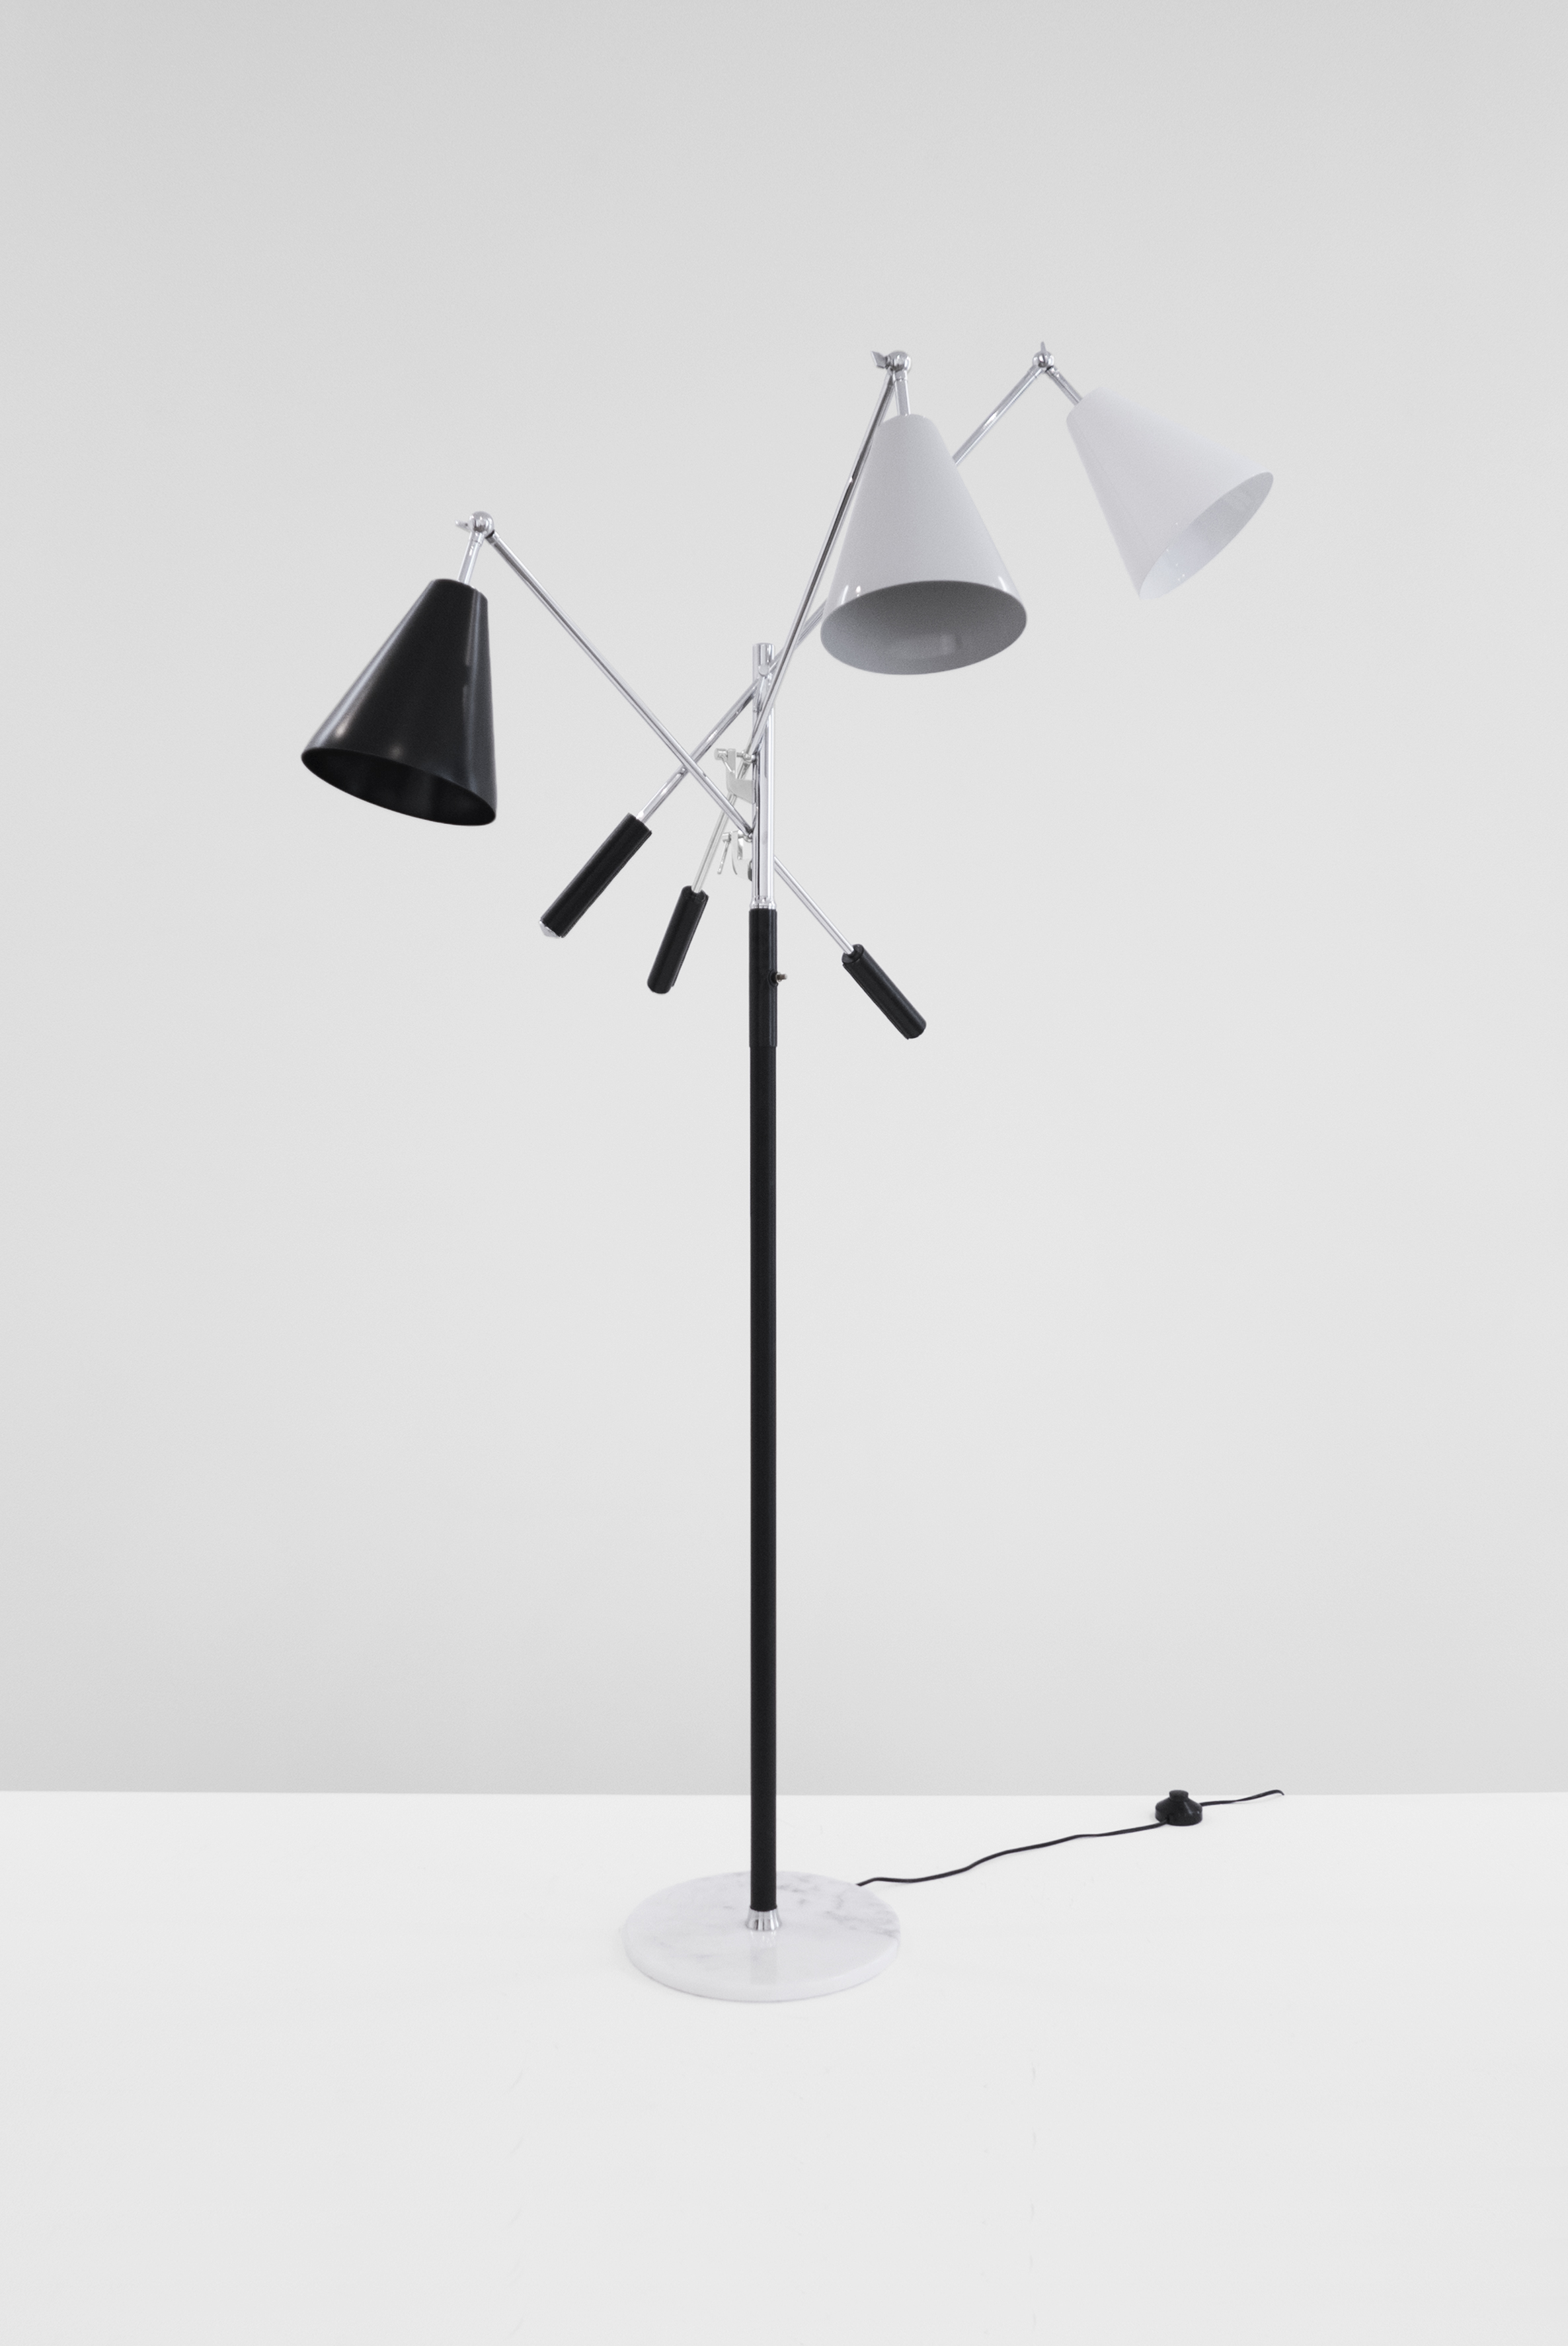 Arredoluce Triennale Floor Lamp, c. 1960 - 1969, nickeled brass, enameled metal, leather, marble, 67H x 35W x 35D inches_2.jpg